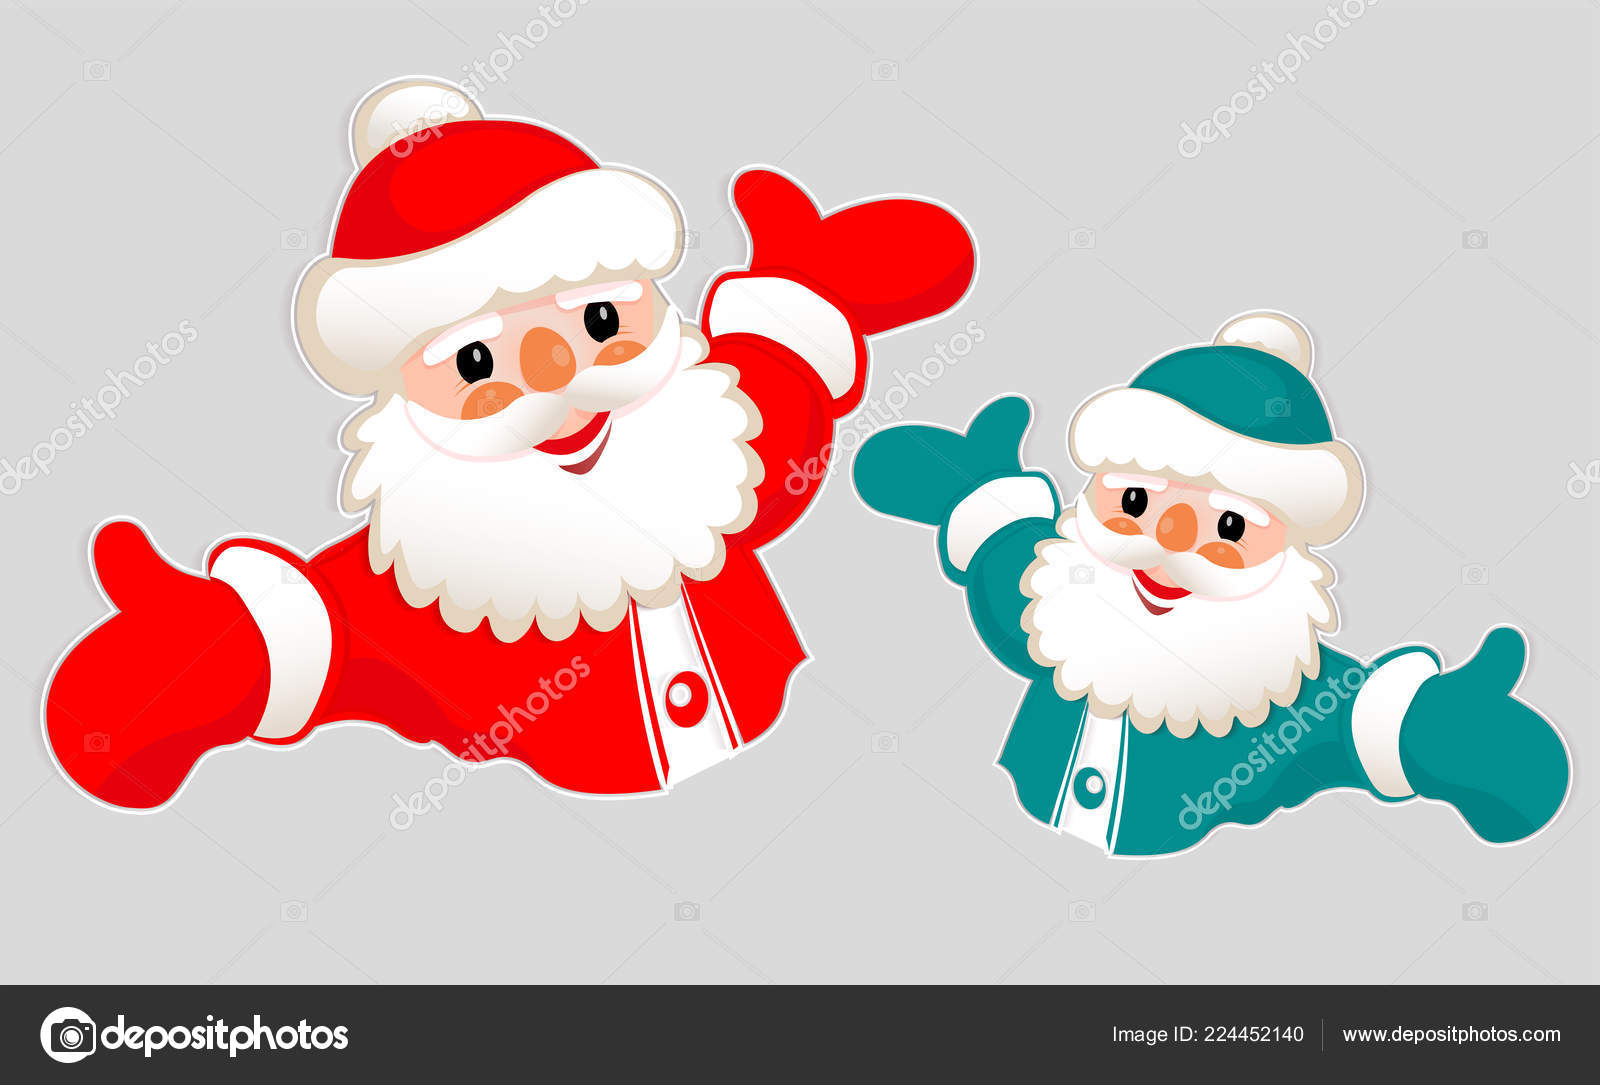 Christmas Drawing Of A Silhouette Of Santa Claus With Arms